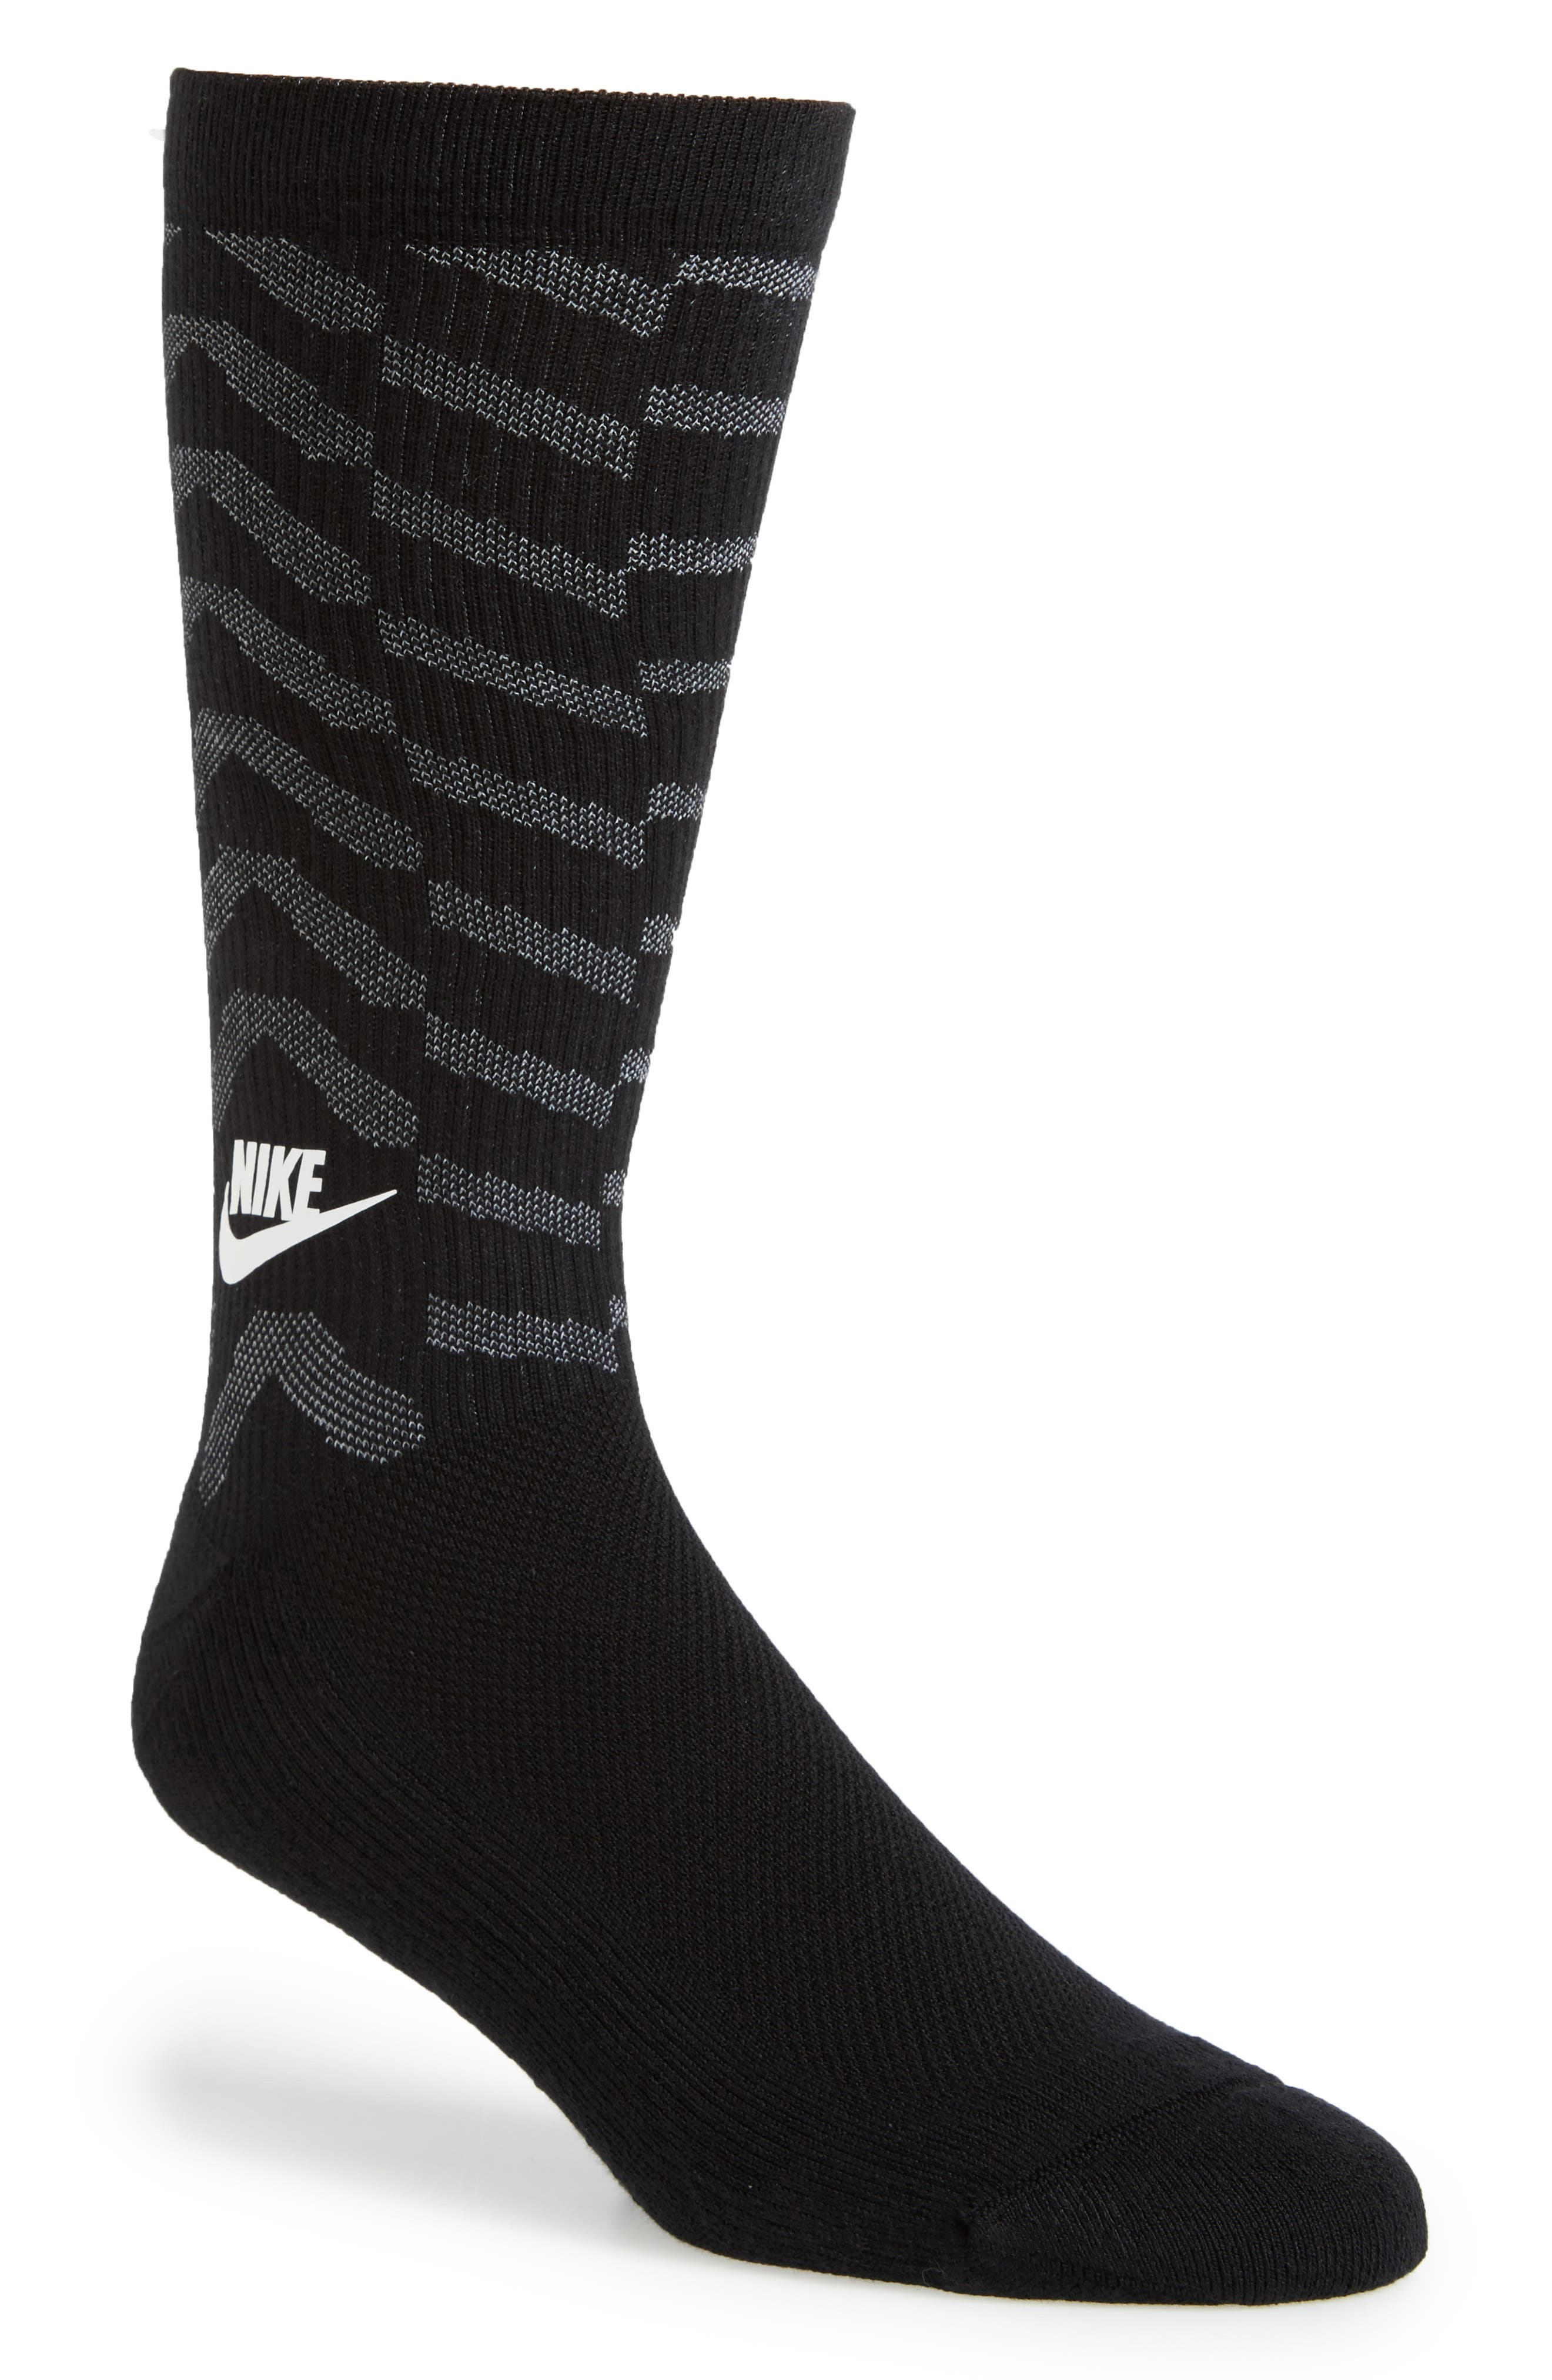 Alternate Image 1 Selected - Nike Statement Graphic Socks